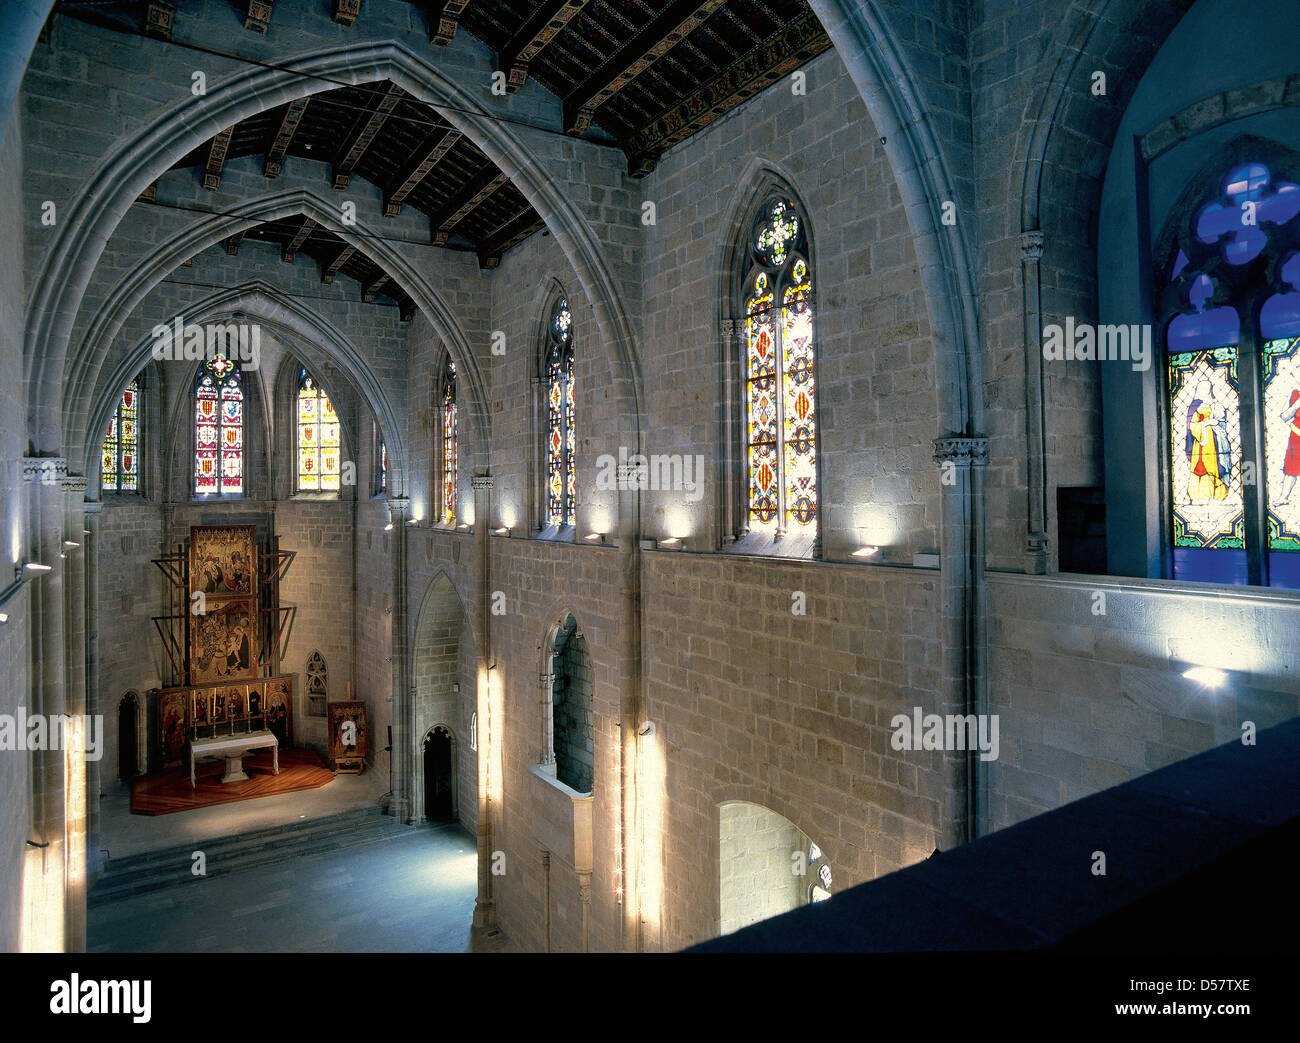 Spain. Barcelona. The Chapel of Santa Agata. Inside. - Stock Image